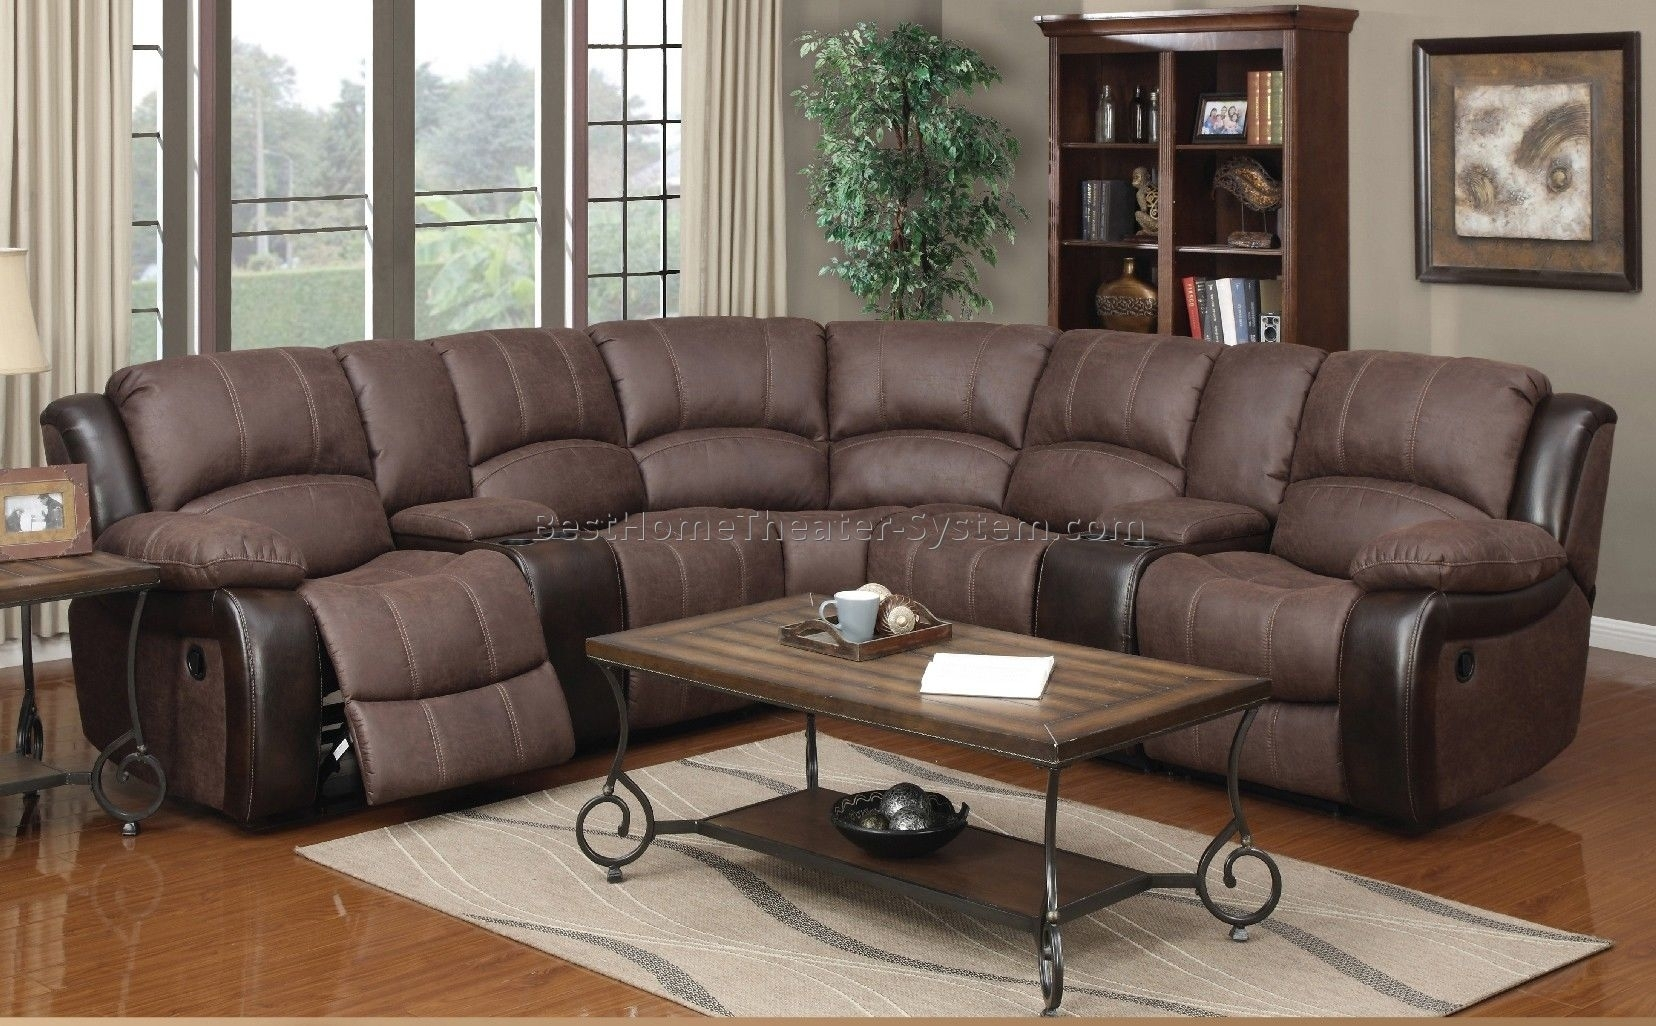 Awesome Sectional Sofas In Phoenix Az - Buildsimplehome in Phoenix Arizona Sectional Sofas (Image 1 of 10)